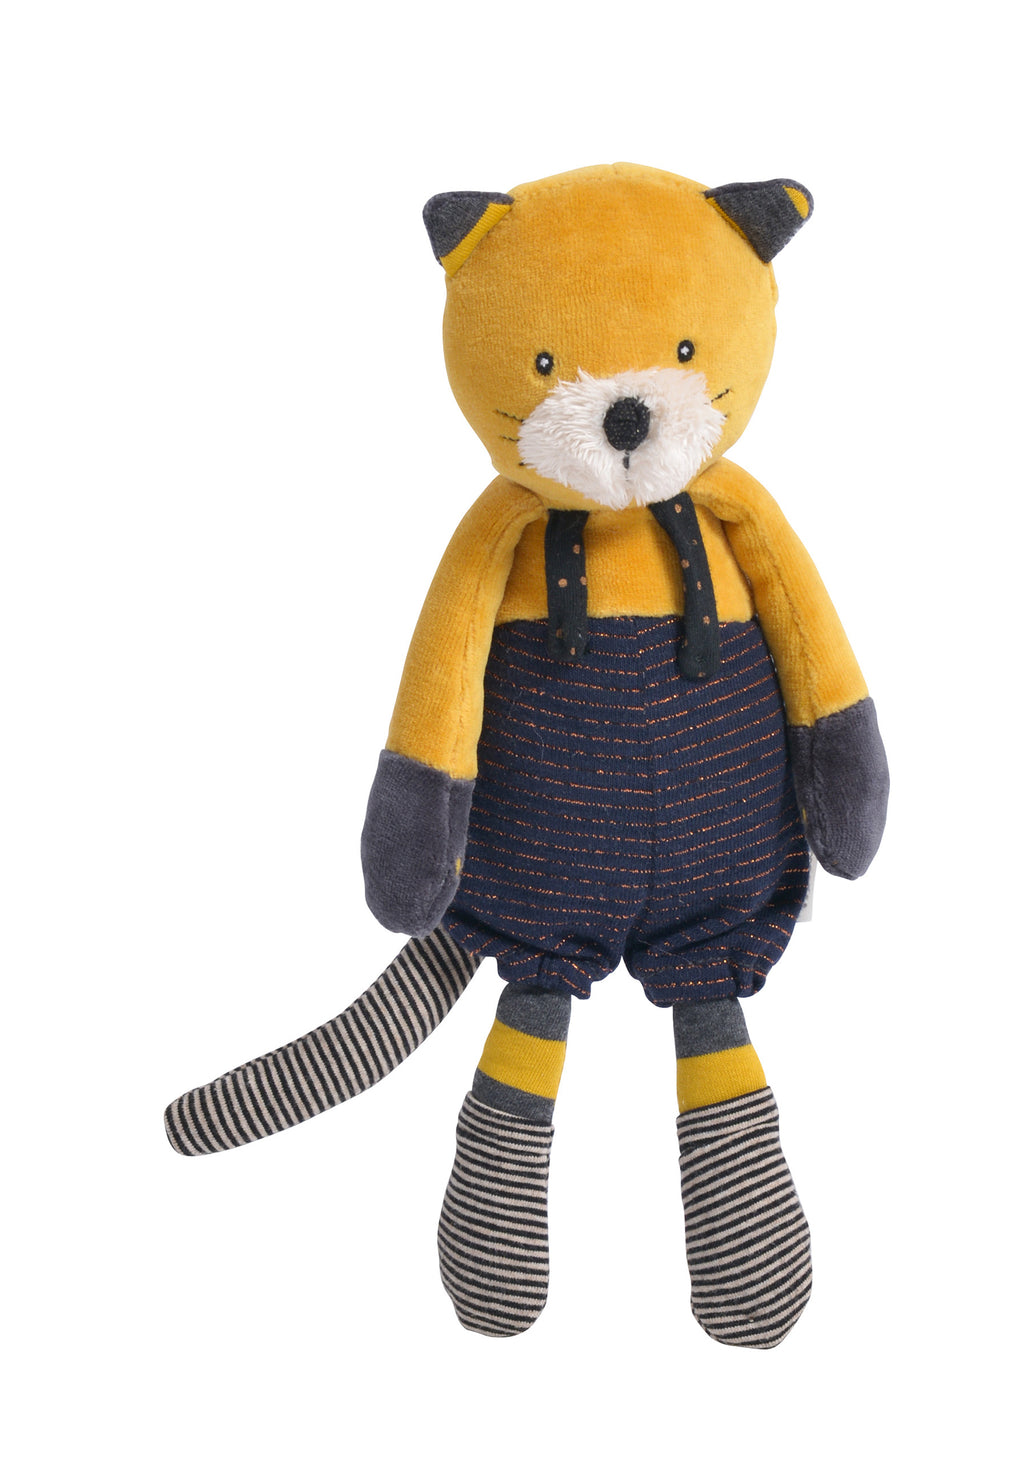 Moulin Roty | Cotton Soft Toy | 'Les Moustaches' Lulu The Cat | Size: 27cm | Age: 0+